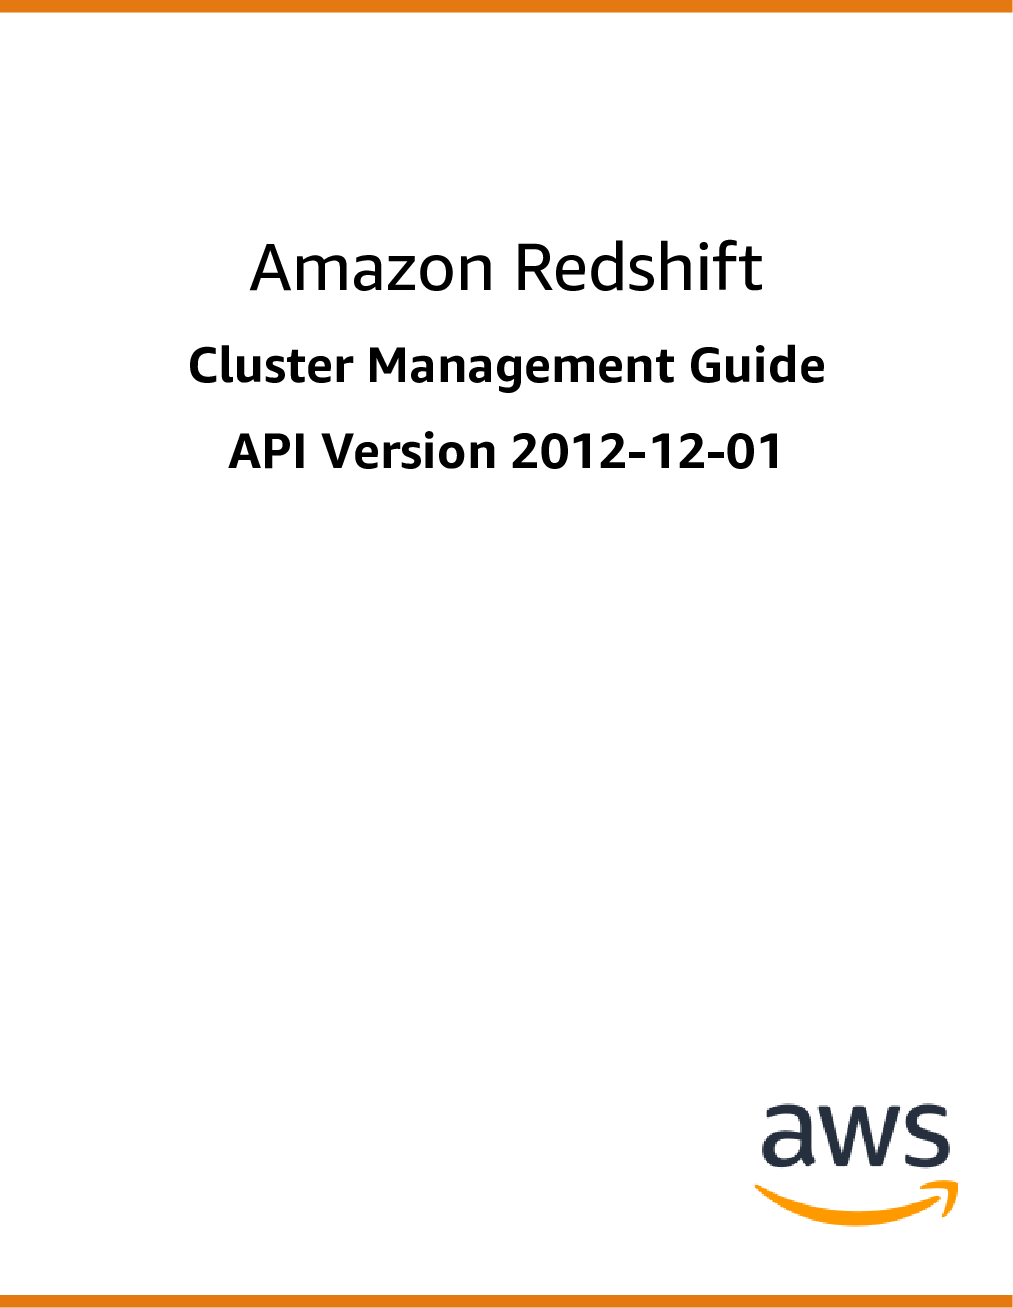 Amazon Redshift Cluster Management Guide